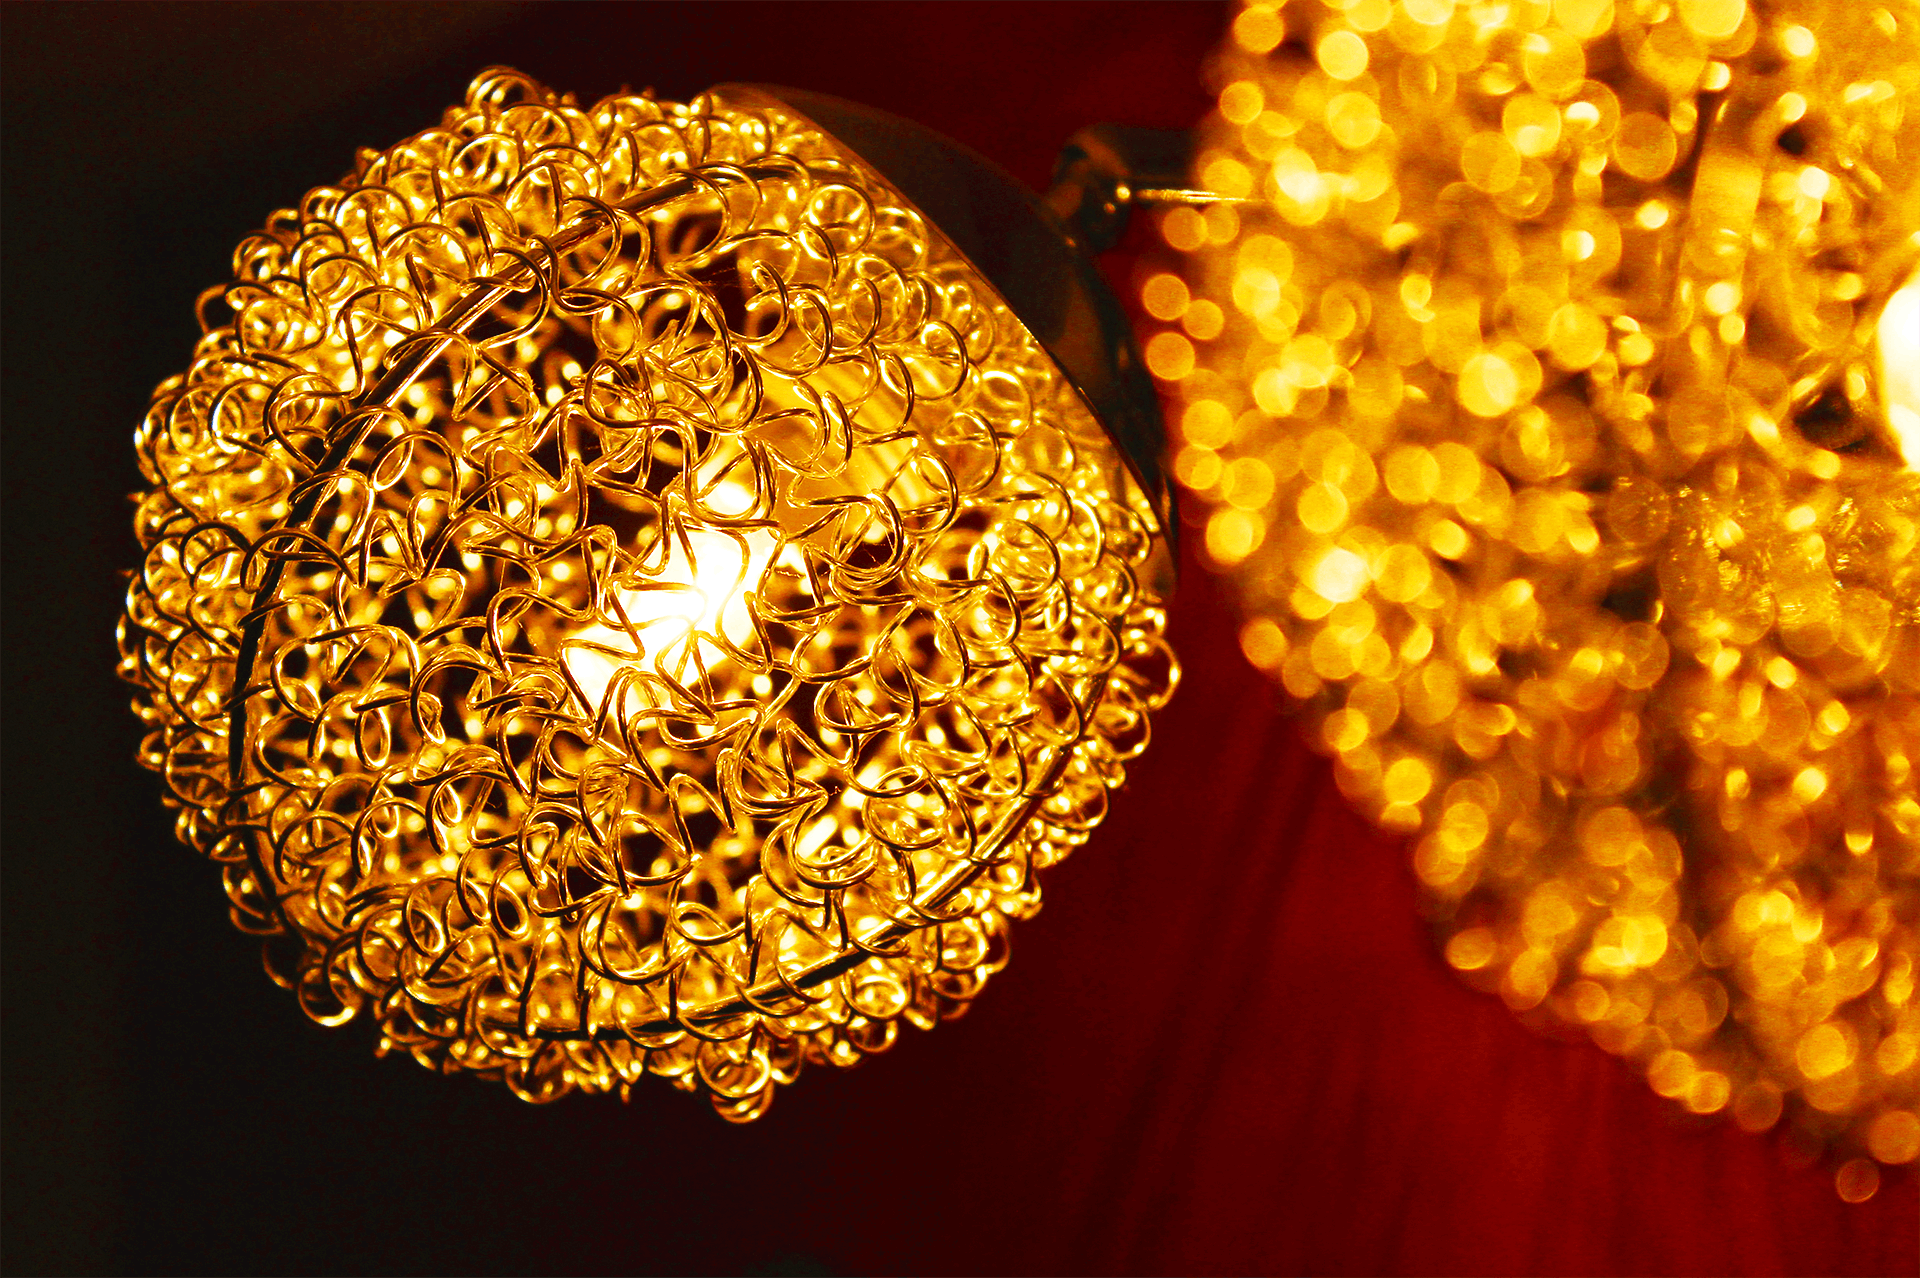 Macro Photography of Brown Crystal Pendant Lamp